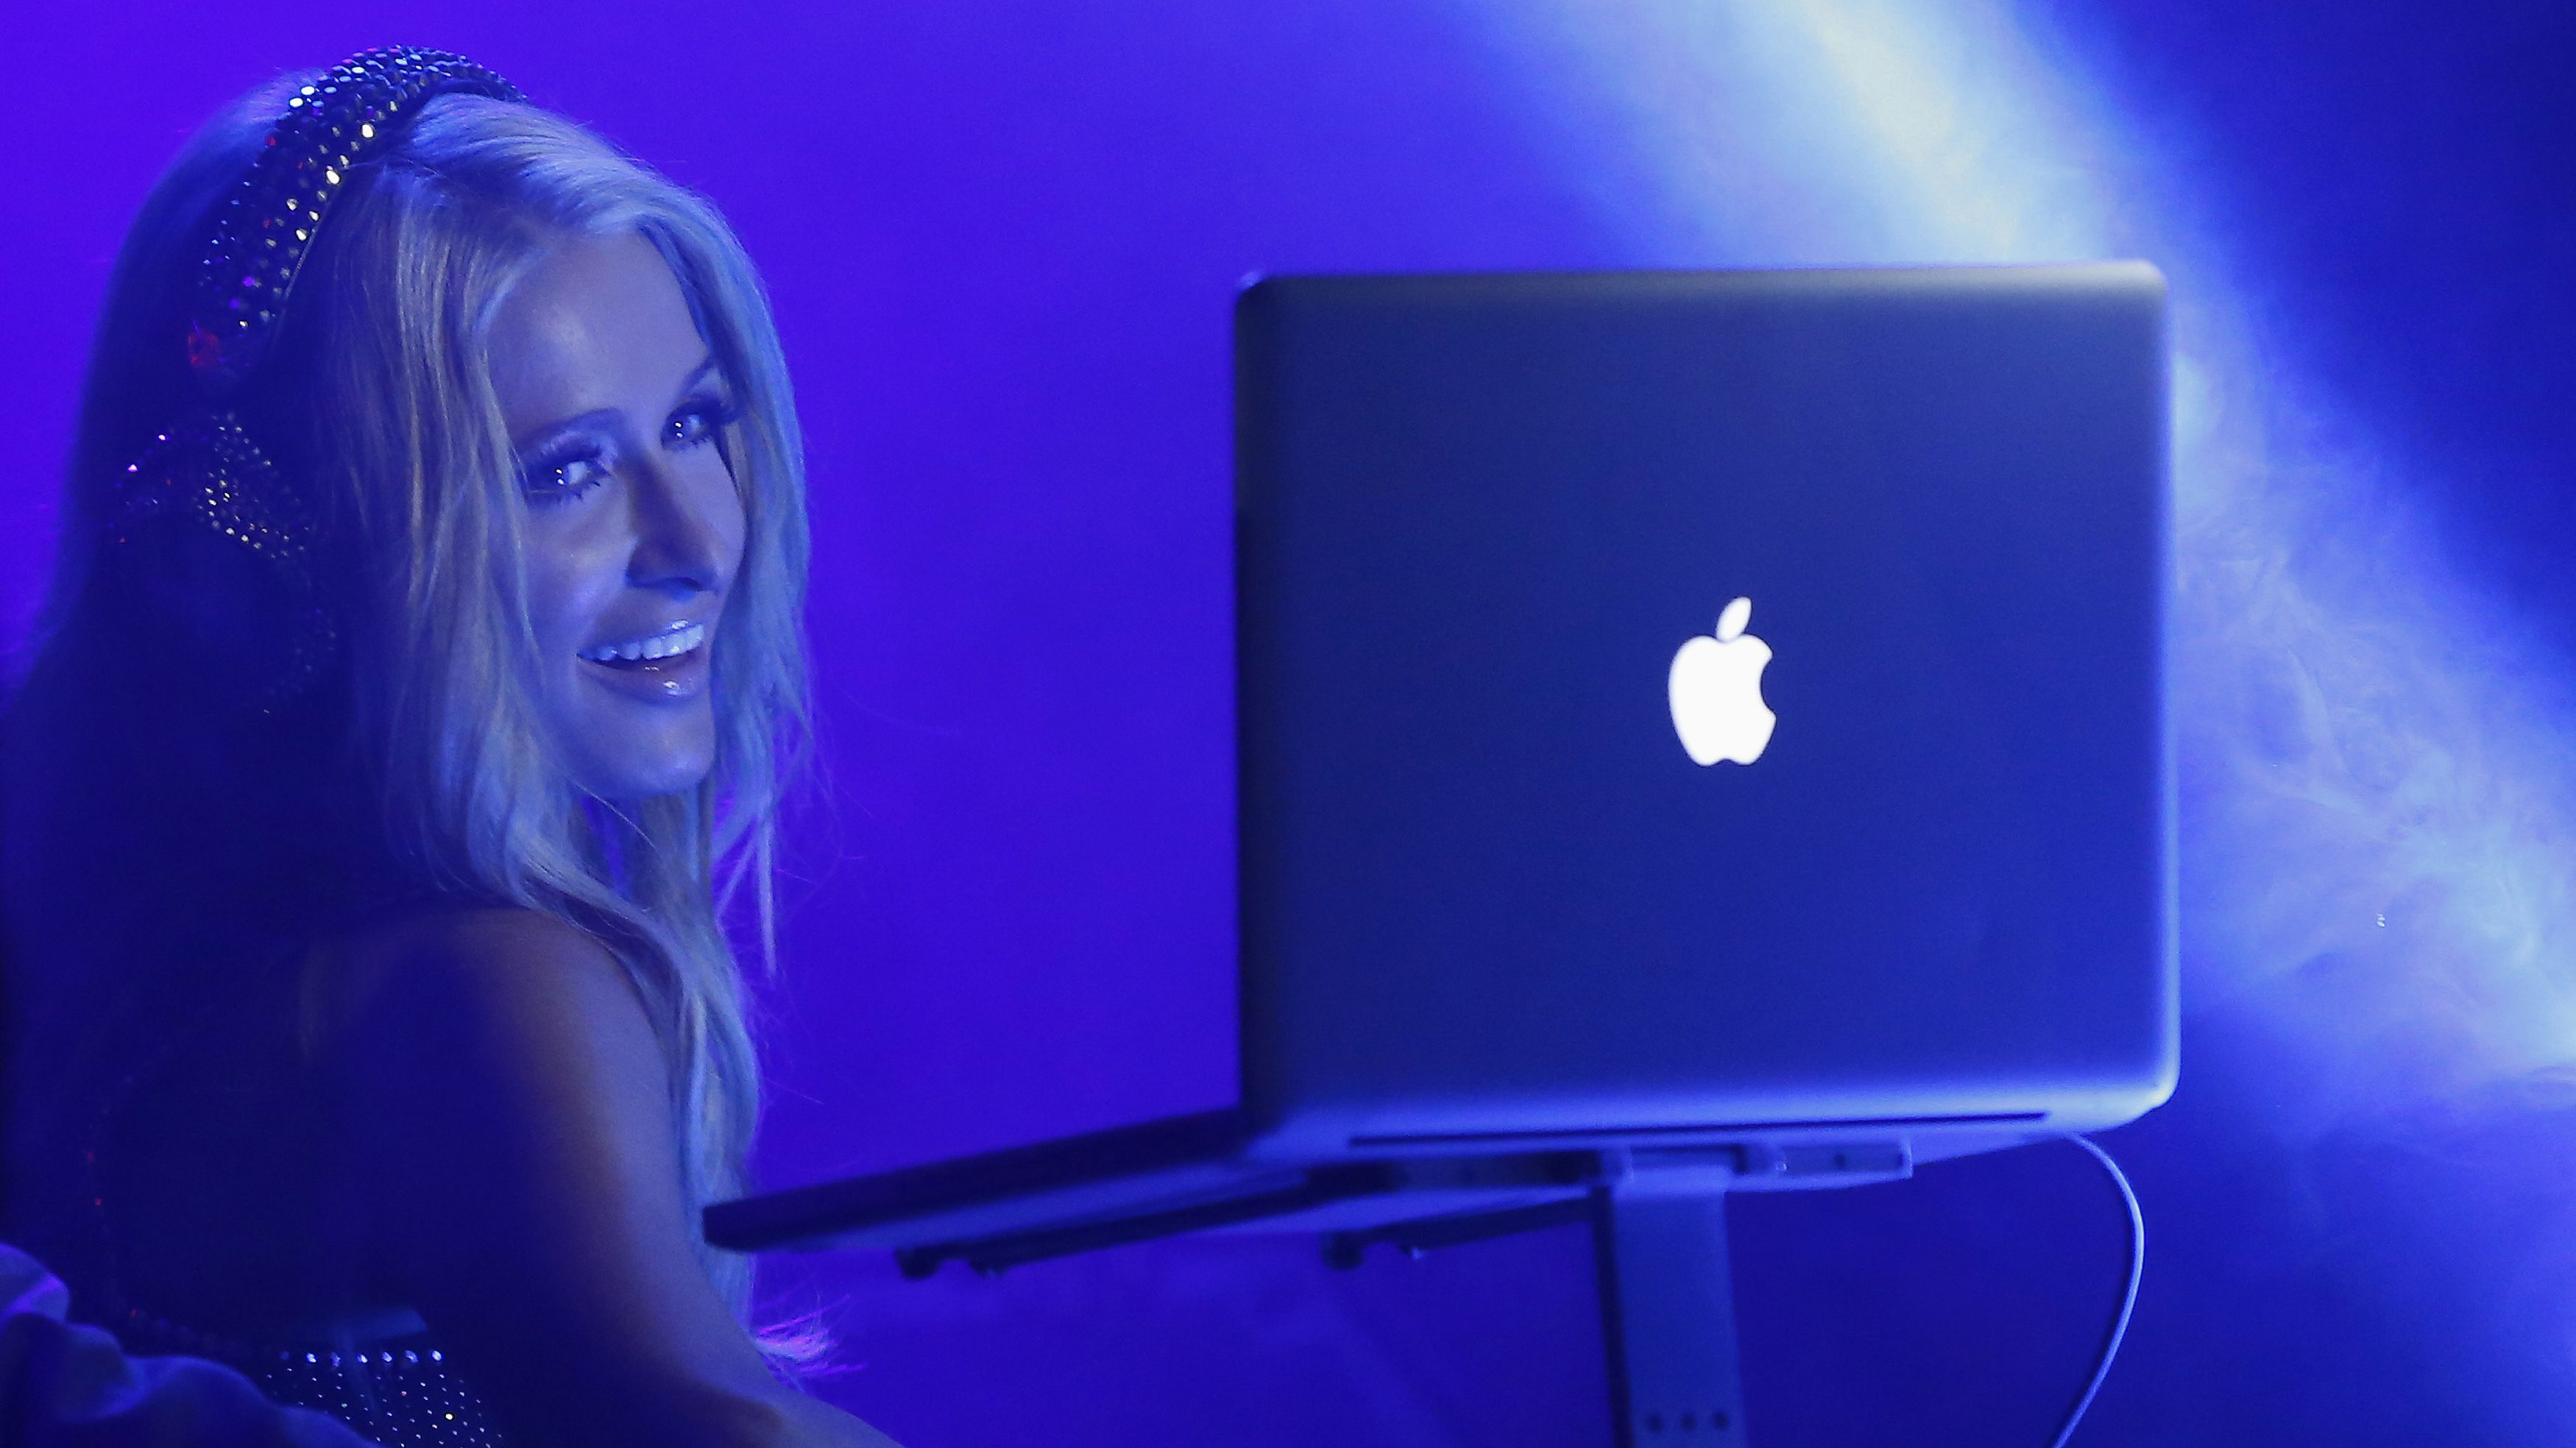 """Socialite Paris Hilton performs a DJ set at the party for the release of her new single """"Good Time"""" at Create Nightclub in Los Angeles, California October 9, 2013."""